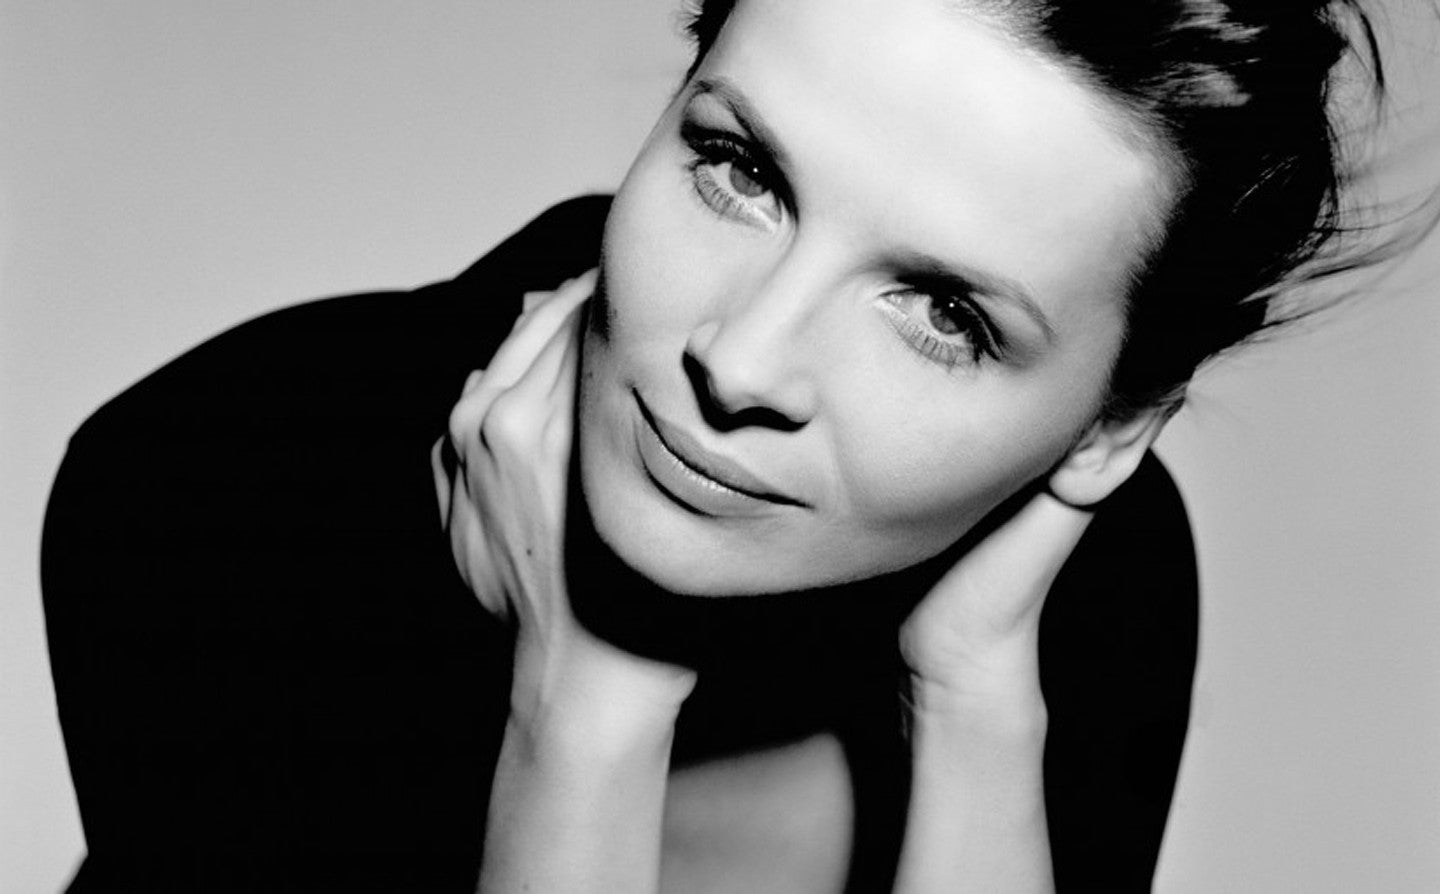 Monday Muse - Juliette Binoche